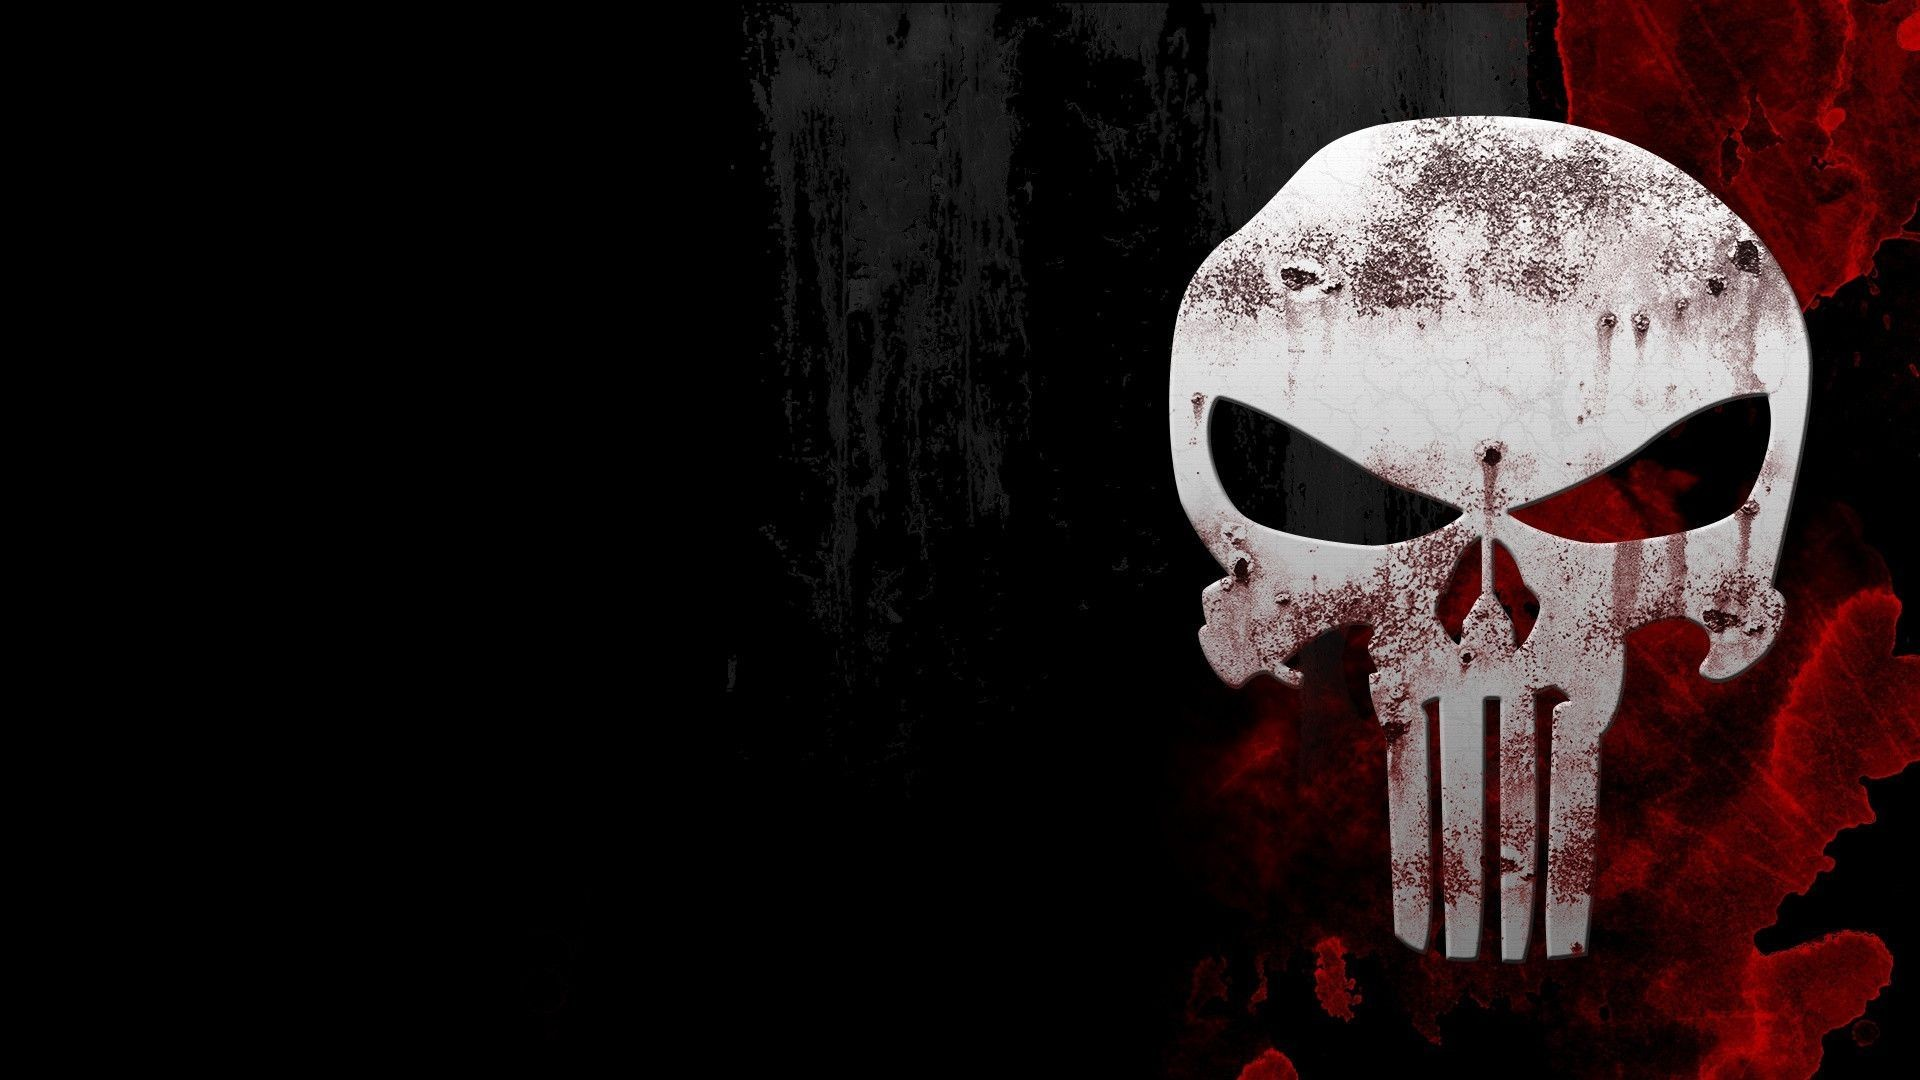 Cool skeleton wallpapers 45 images 1920x1080 hd skull wallpapers wallpaper voltagebd Image collections